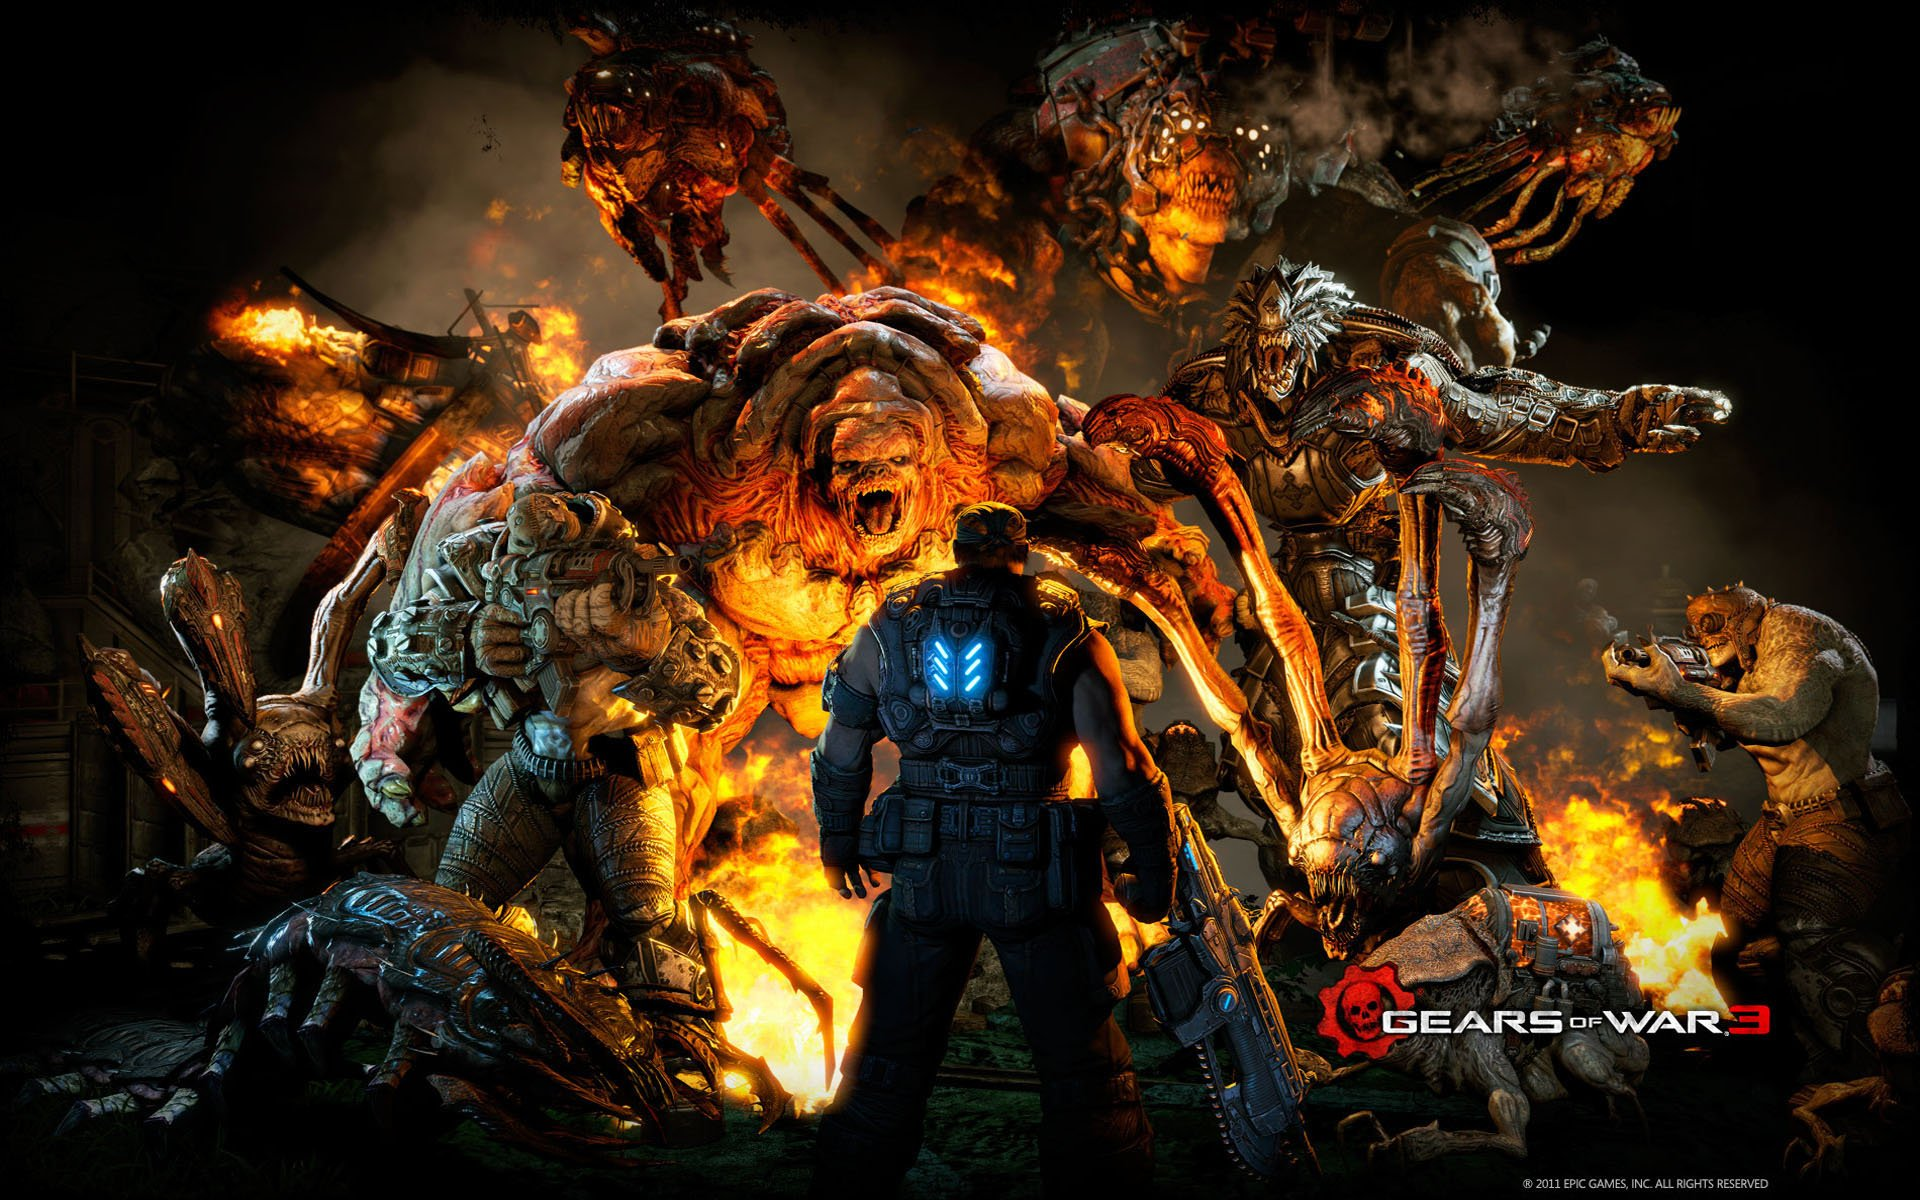 Free Download Wallpapers Gamers Gears Of War Part 4 Socialphy